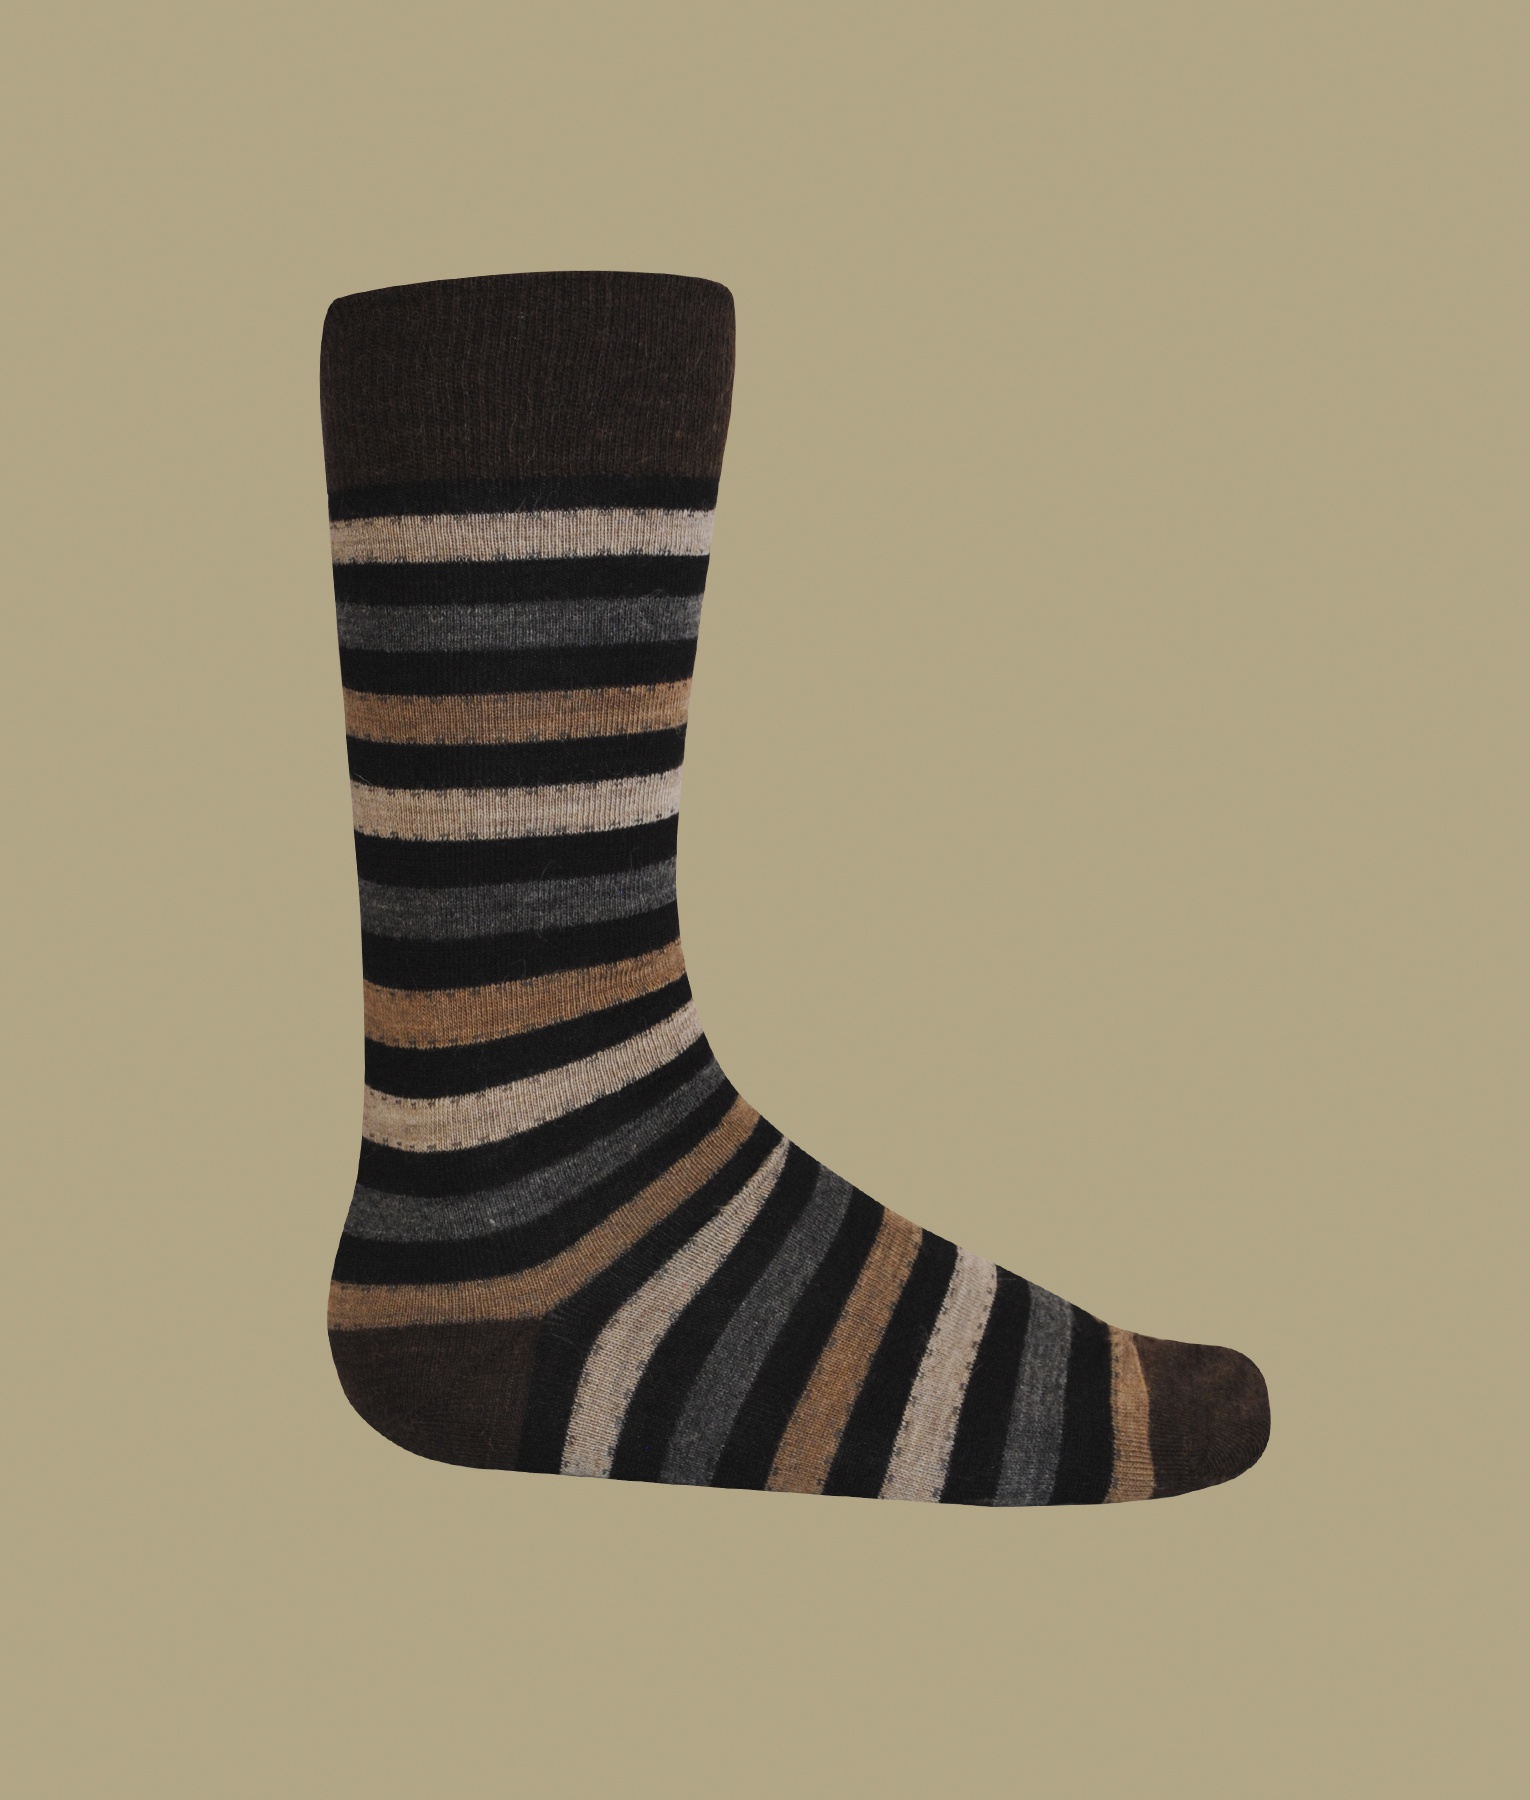 MULTI STRIPES SOCKS, MEN'S C003